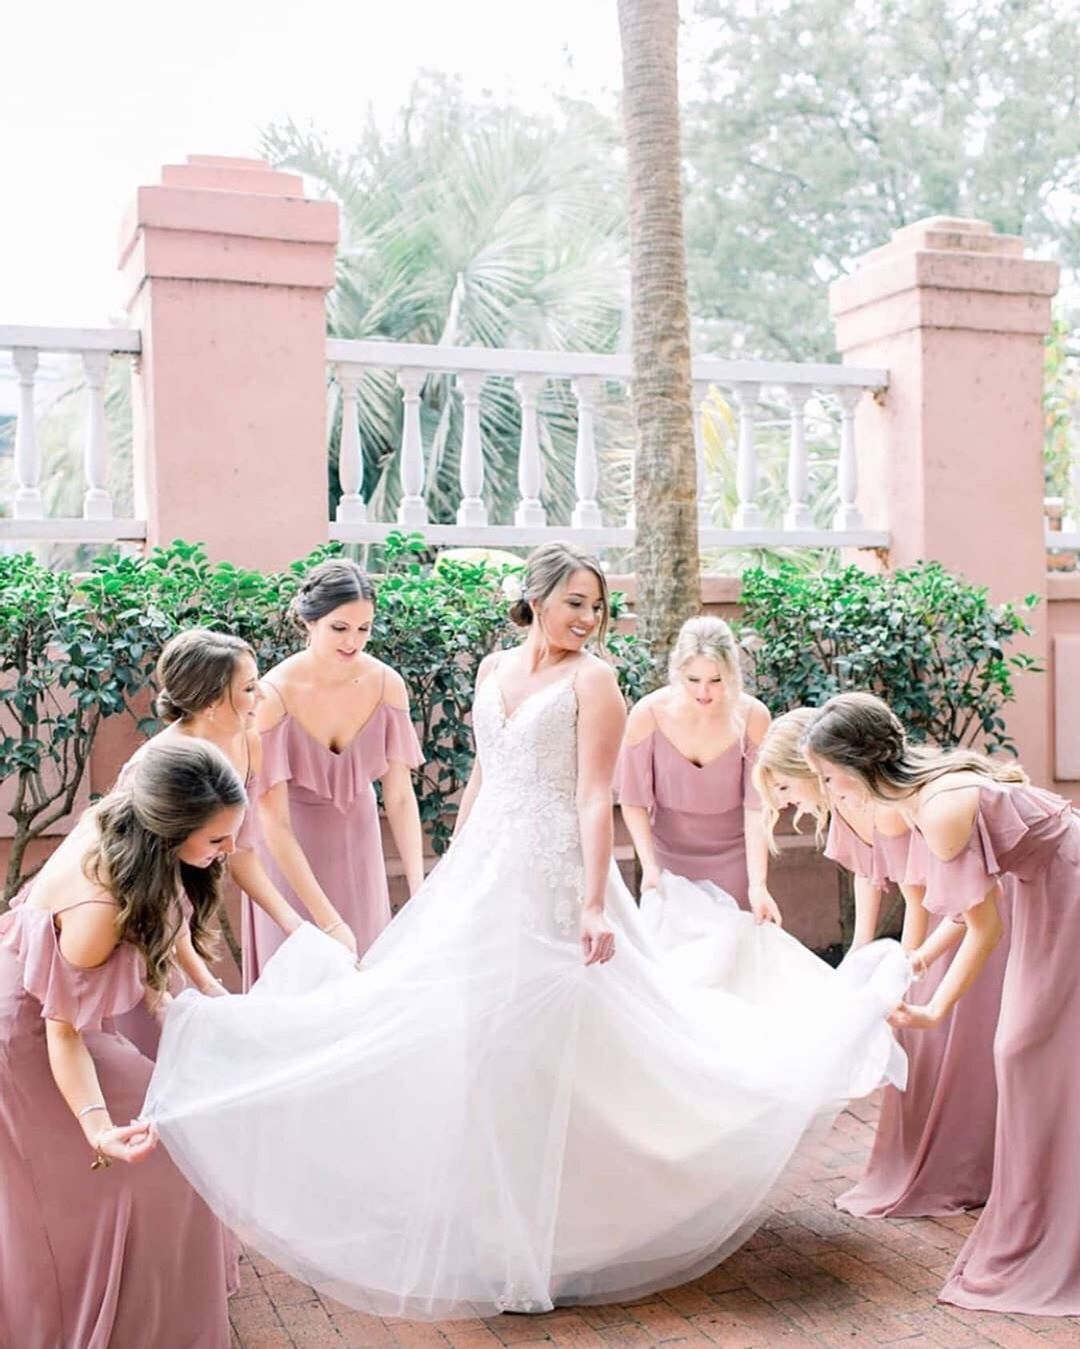 1 674 Likes 11 Comments Bella Bridesmaids Bellabridesmaids On Instagram On Wednesday S We Wear Pink Bellajax Bella Bridesmaid Bride Bridesmaid